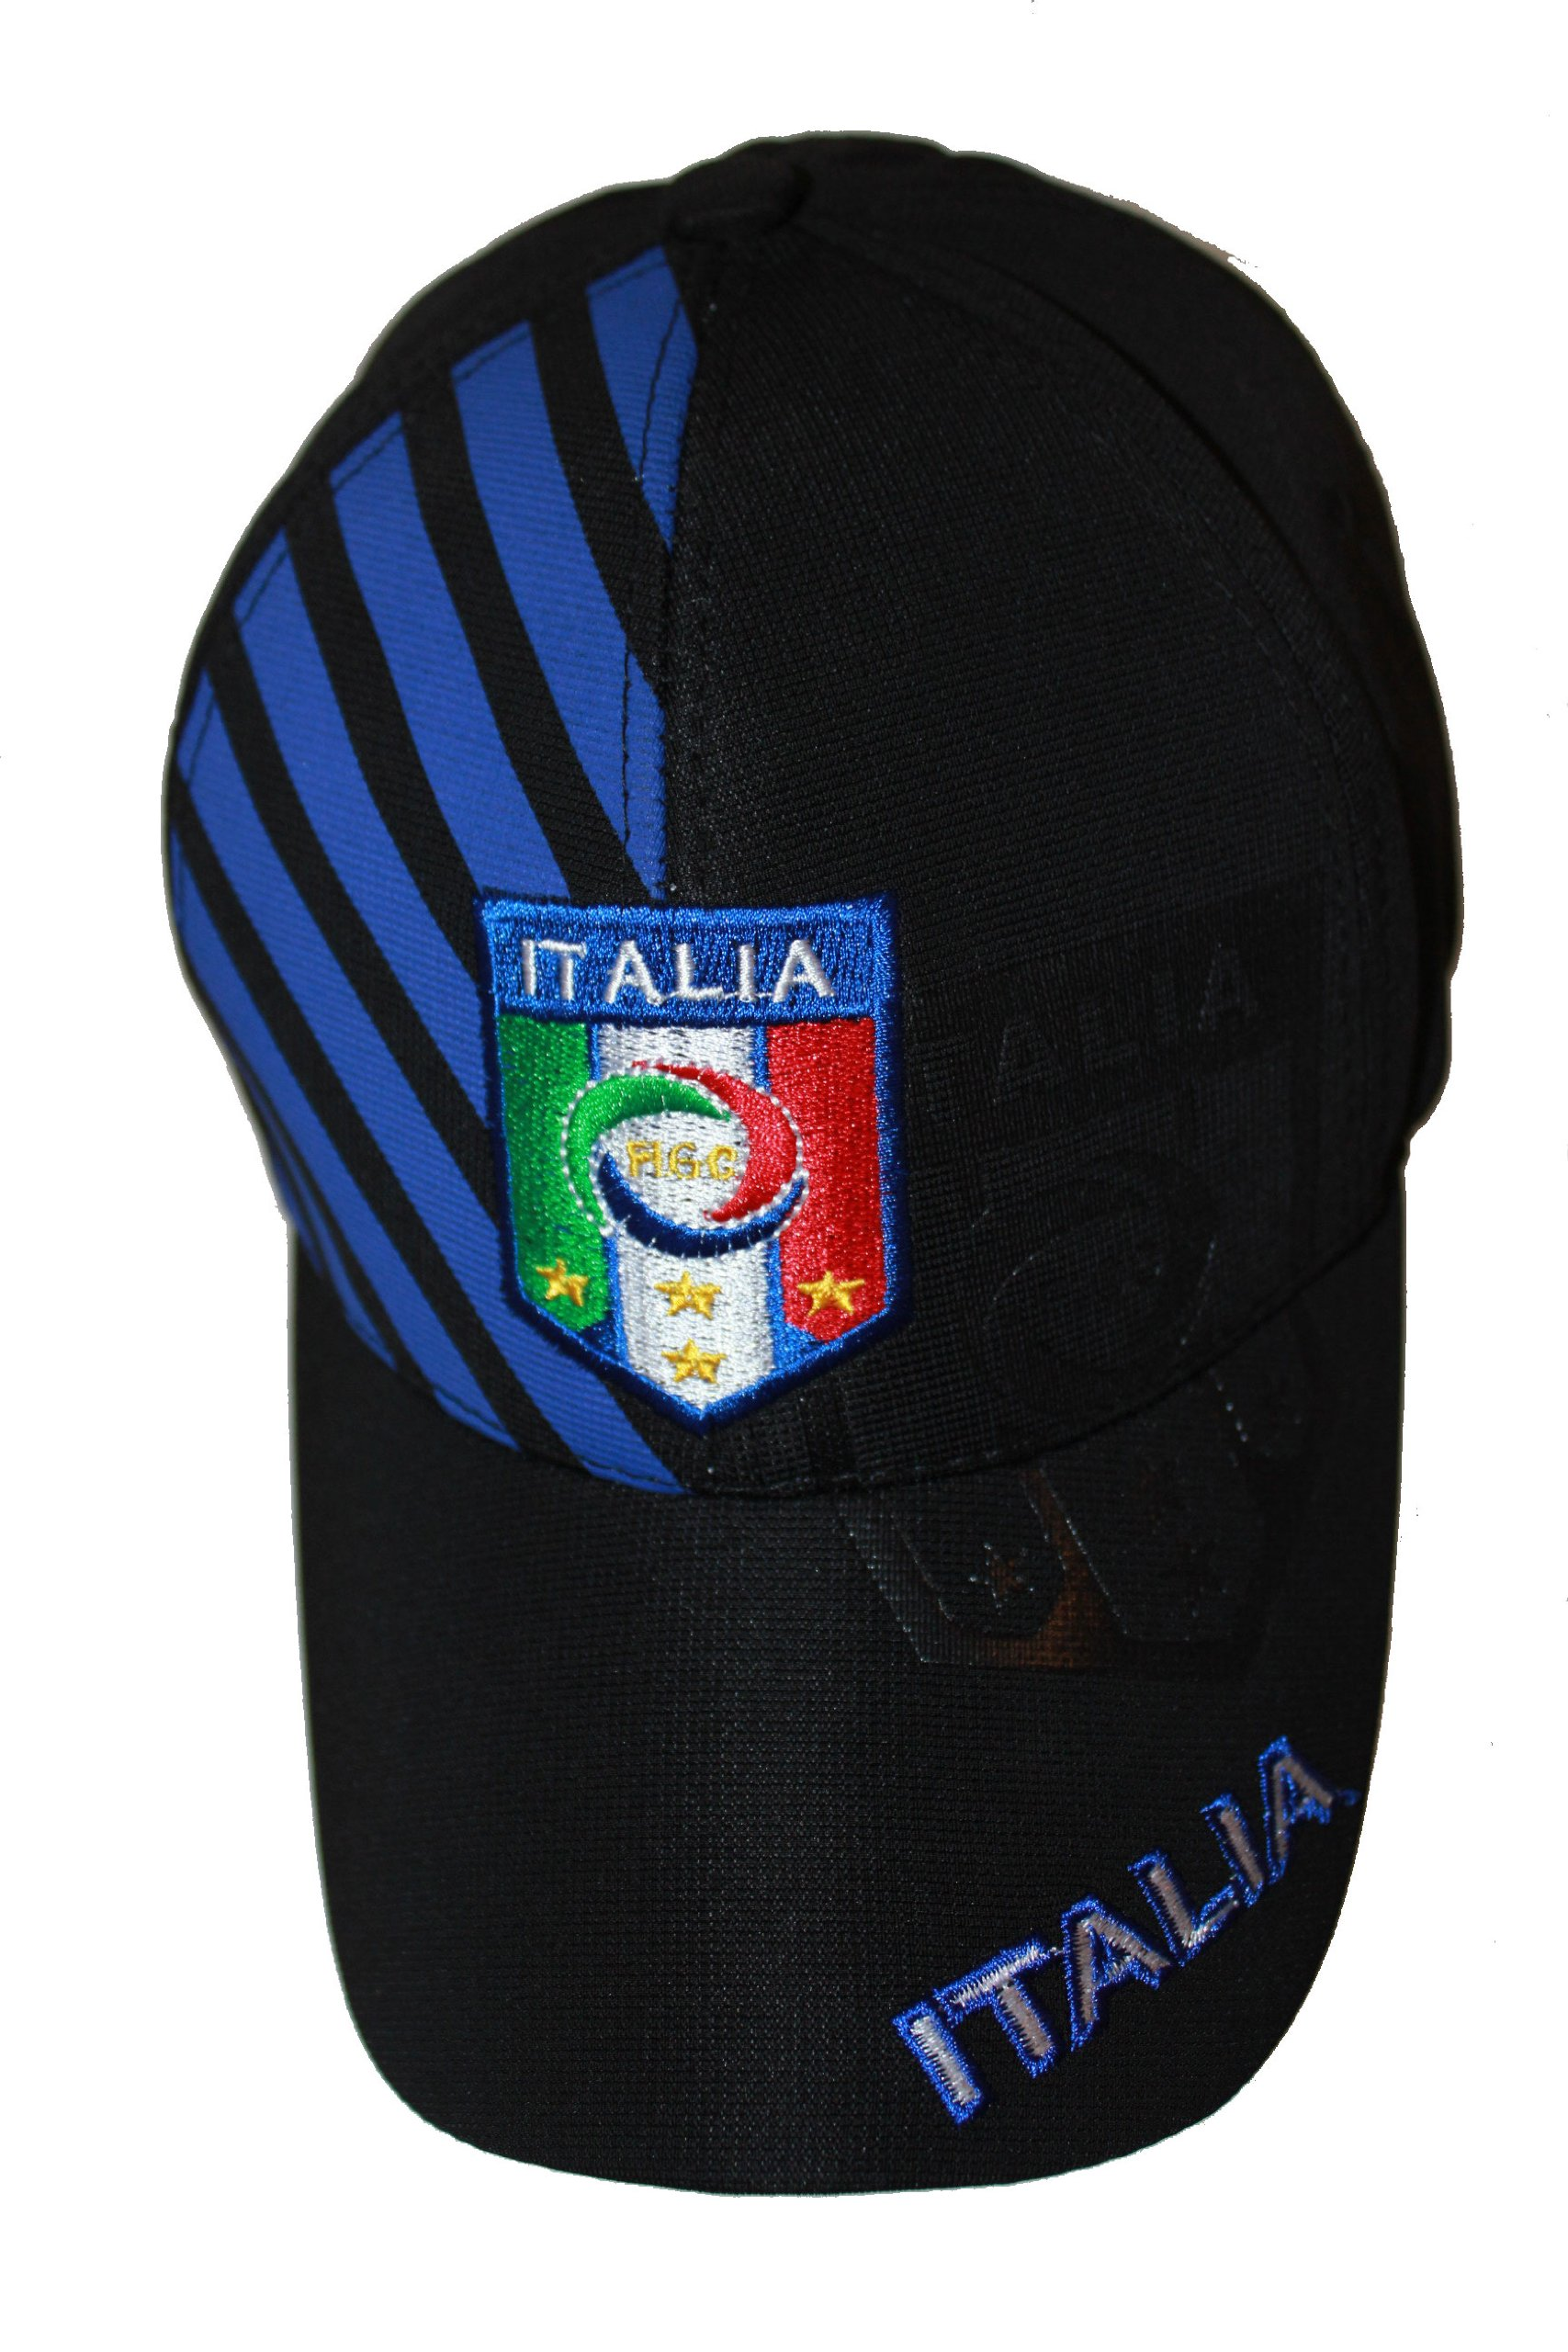 Italia Italy Black With Blue Stripes .. FIGC Logo FIFA Soccer World Cup .. FlexFit Hat Cap .. .. New